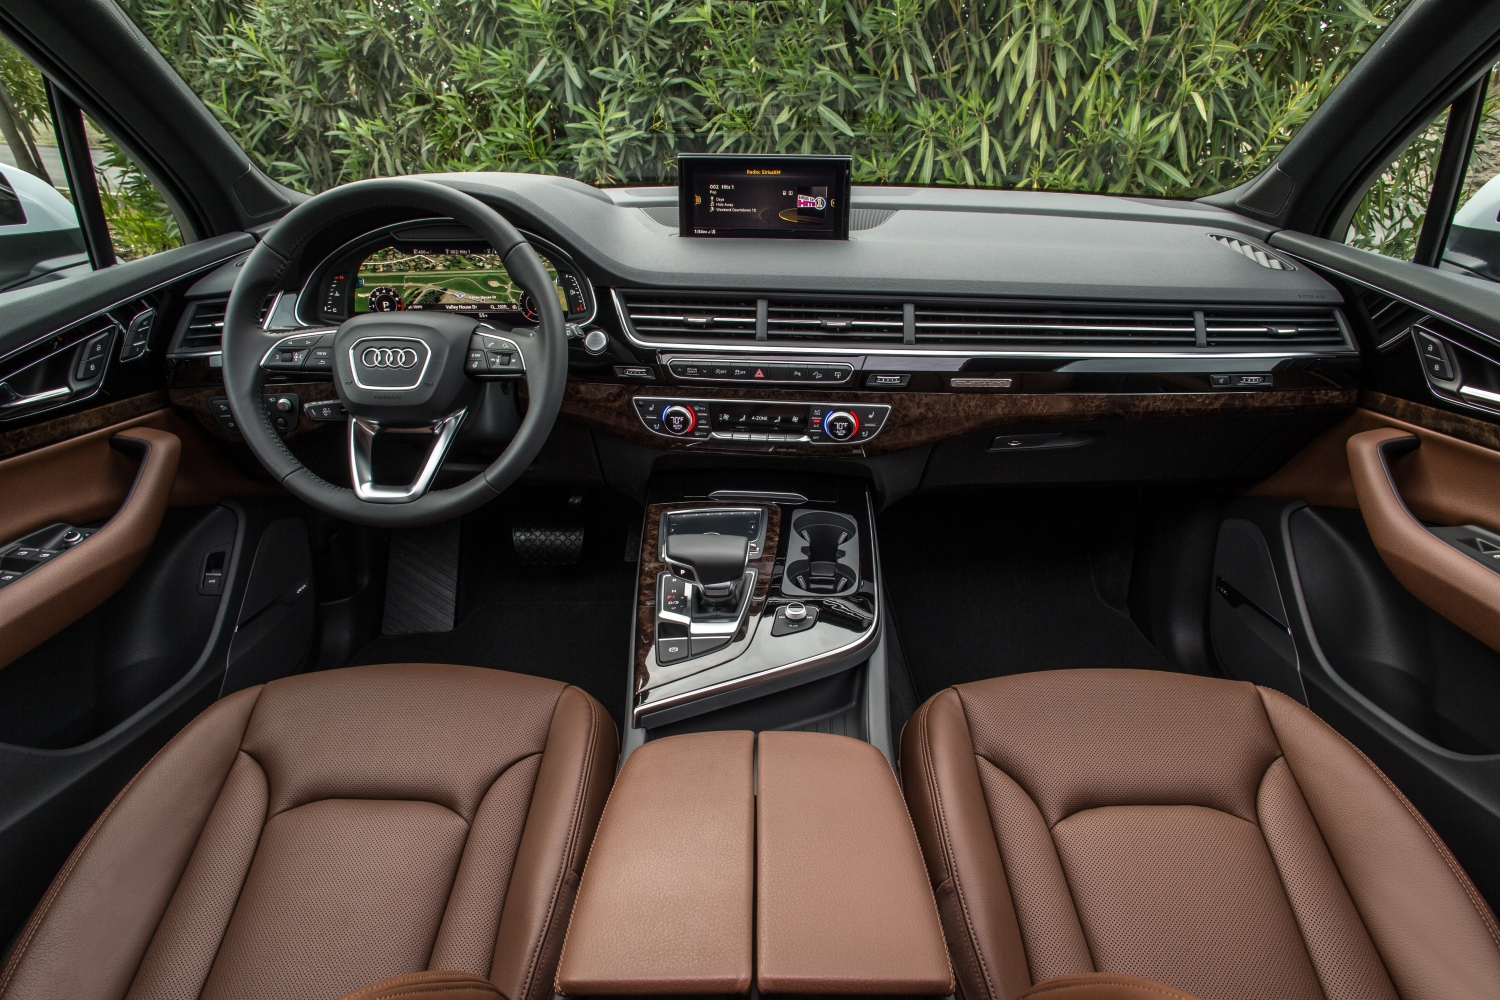 2018 Audi Q7 3 0 Tfsi Review A Solid Luxury Crossover With An Extra Fine Interior